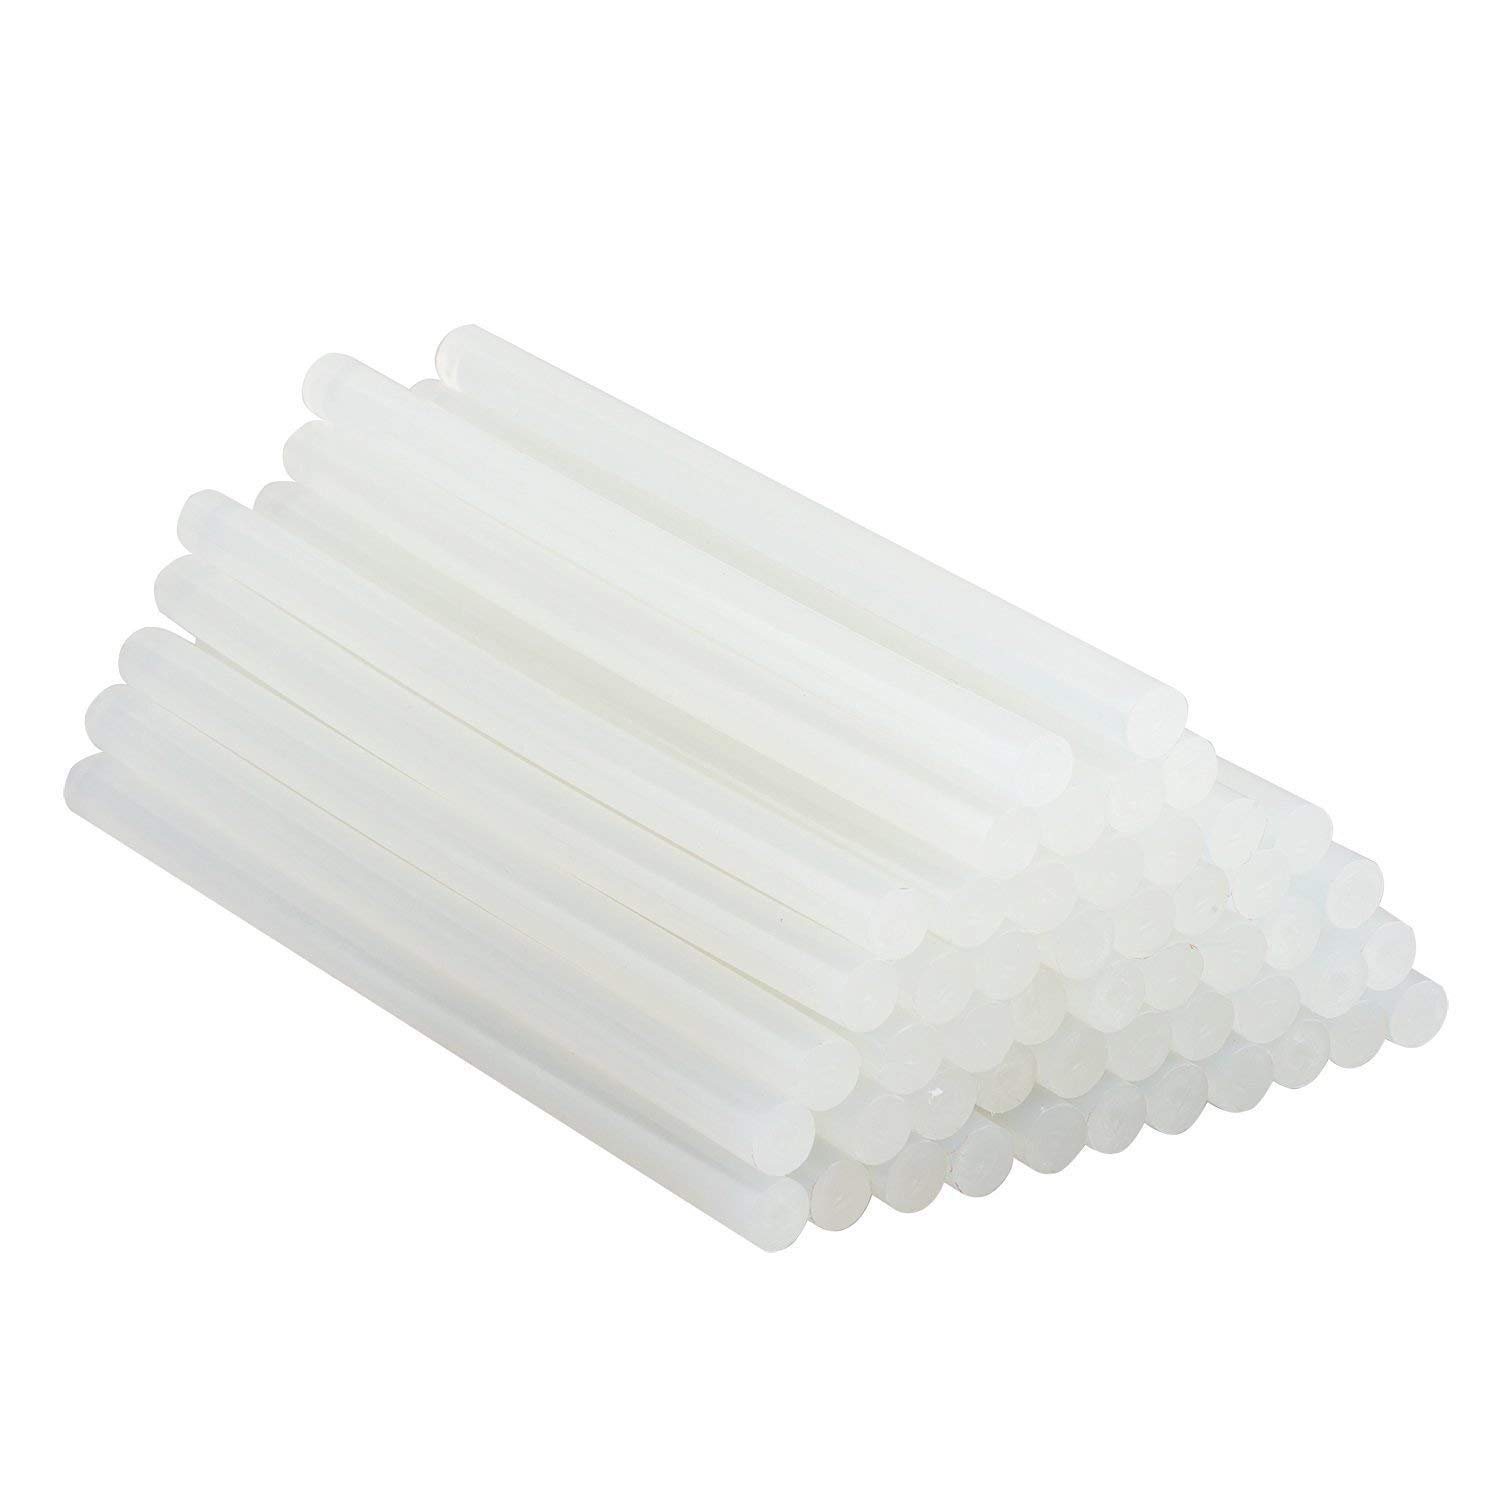 EKIND 105Pcs Hot Melt Glue Sticks (0.27'' Dx 7.5''L) for Hot Glue Gun, DIY Gadget, Small Craft Projects and Quick Repairs in Home and Office